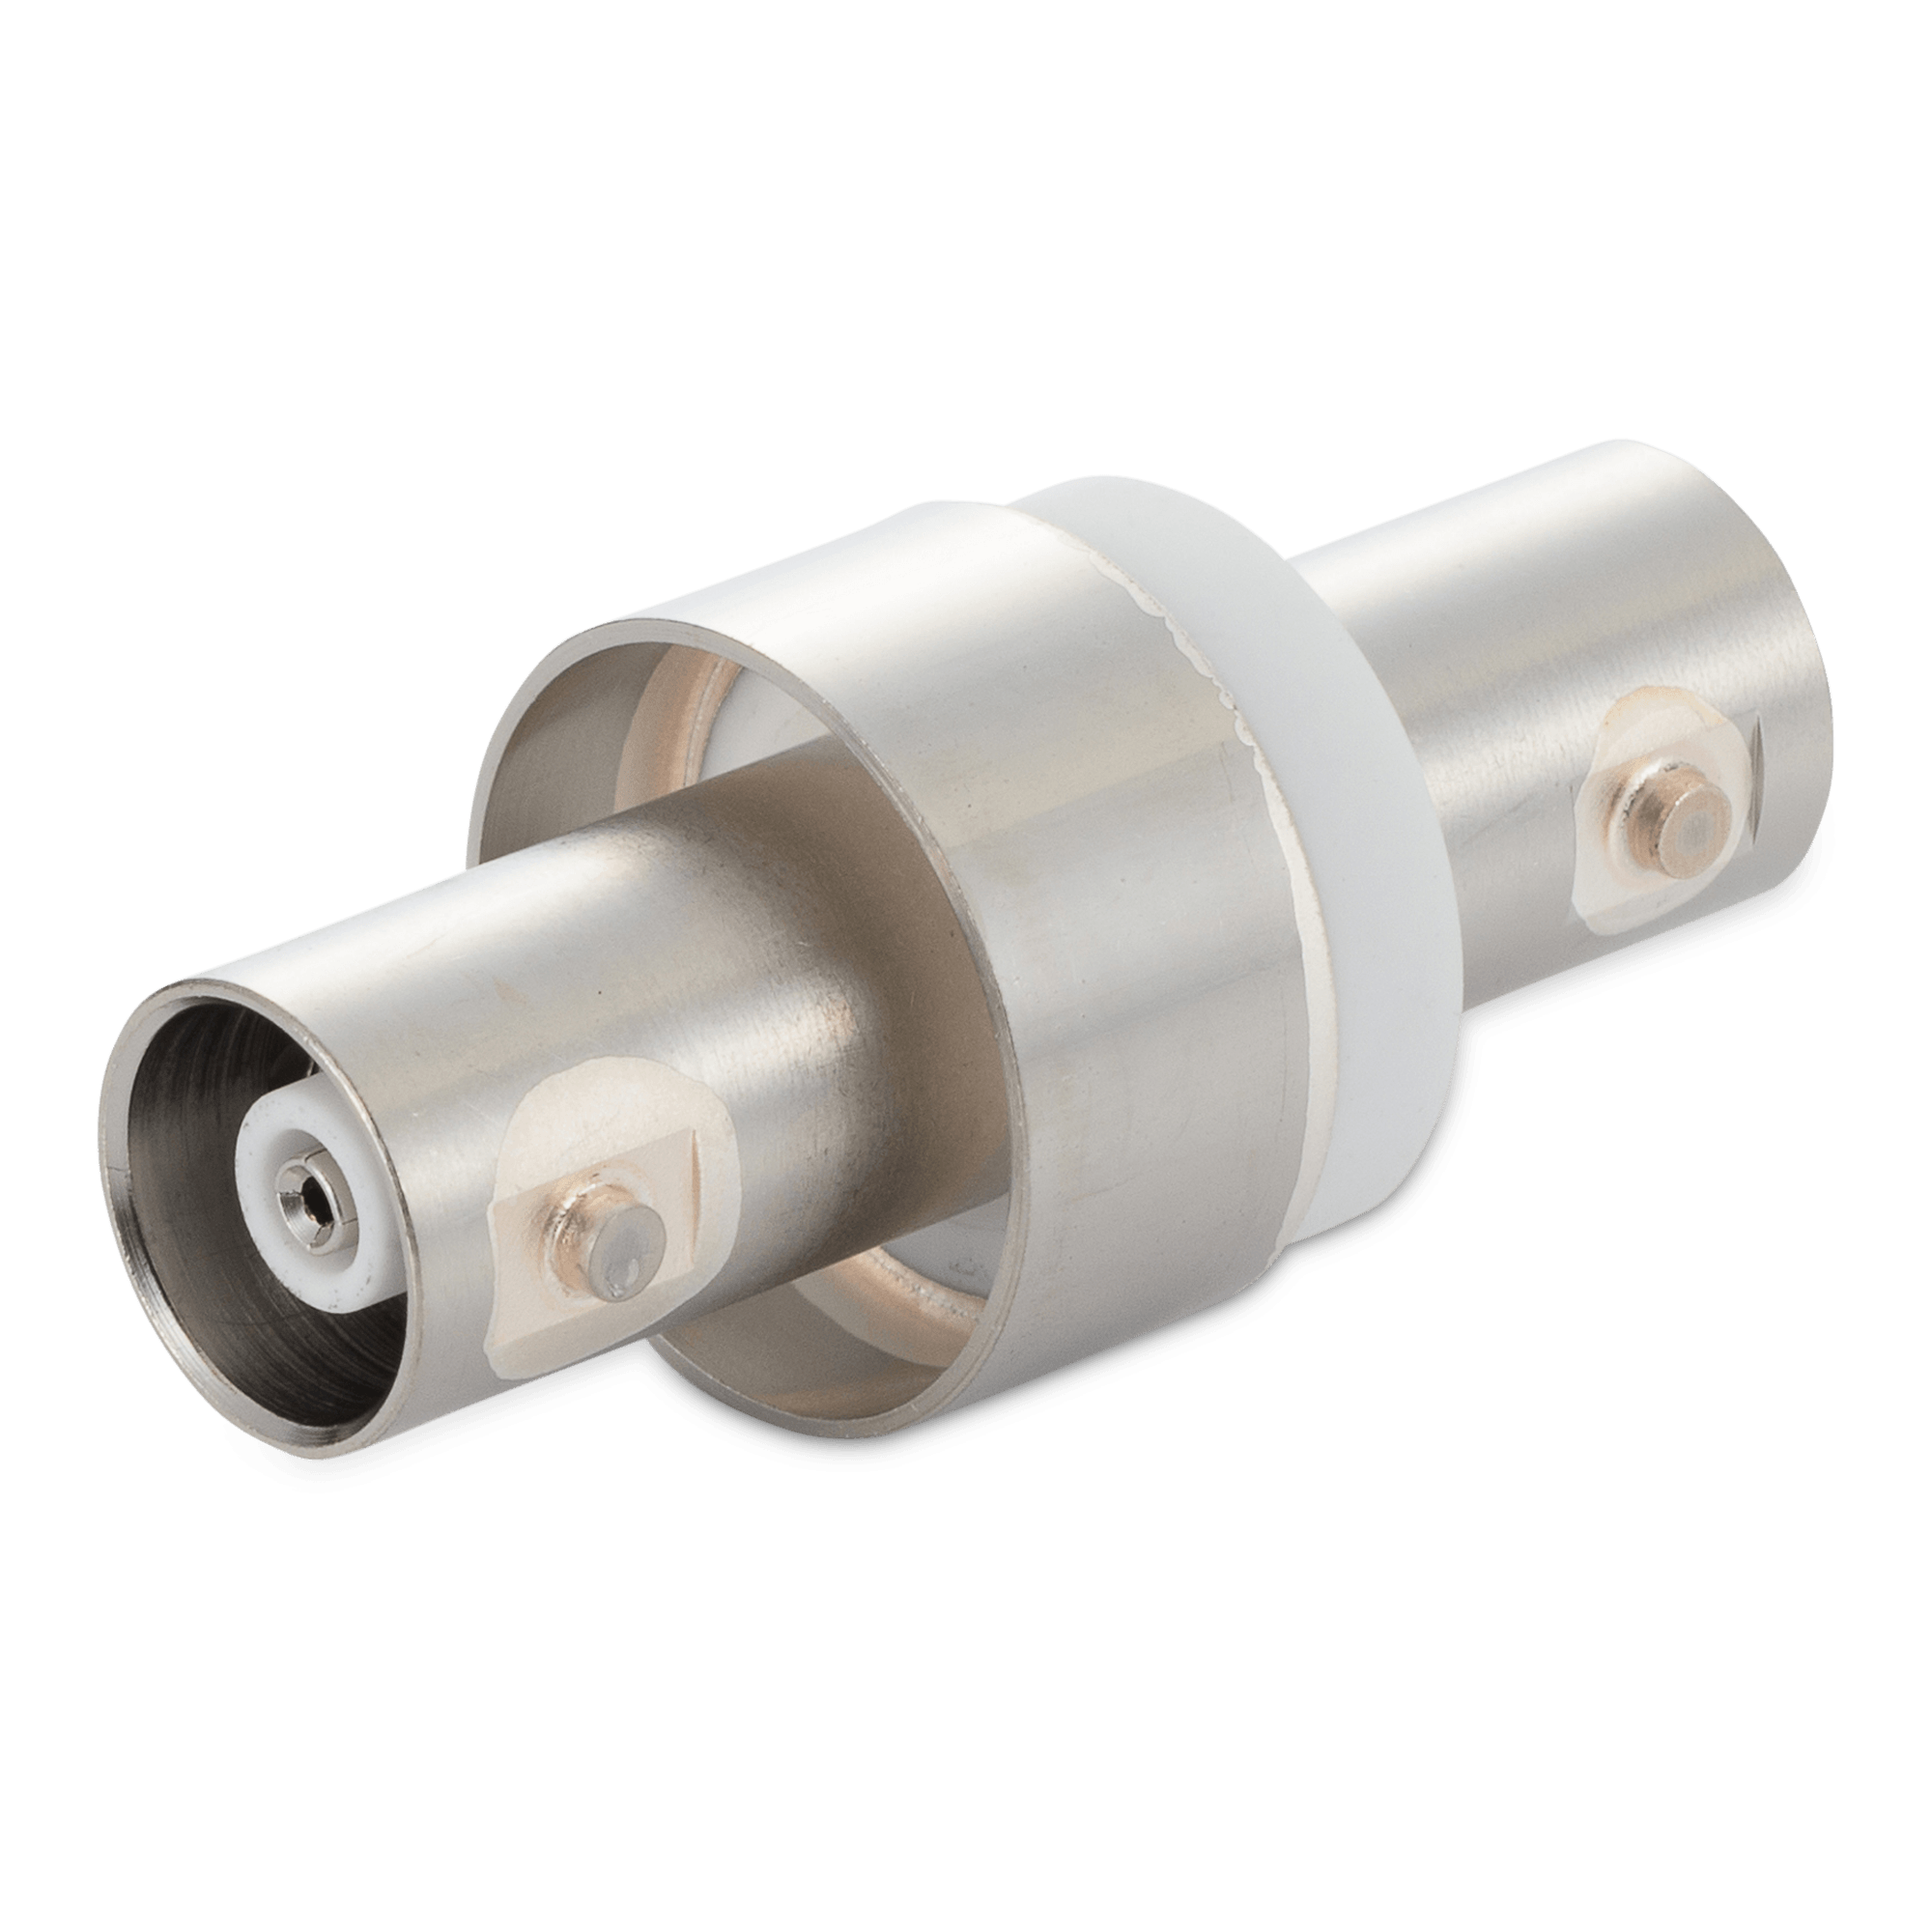 MHV-JJ-F Double Ended Floating Shield Coaxial vendor-unknown